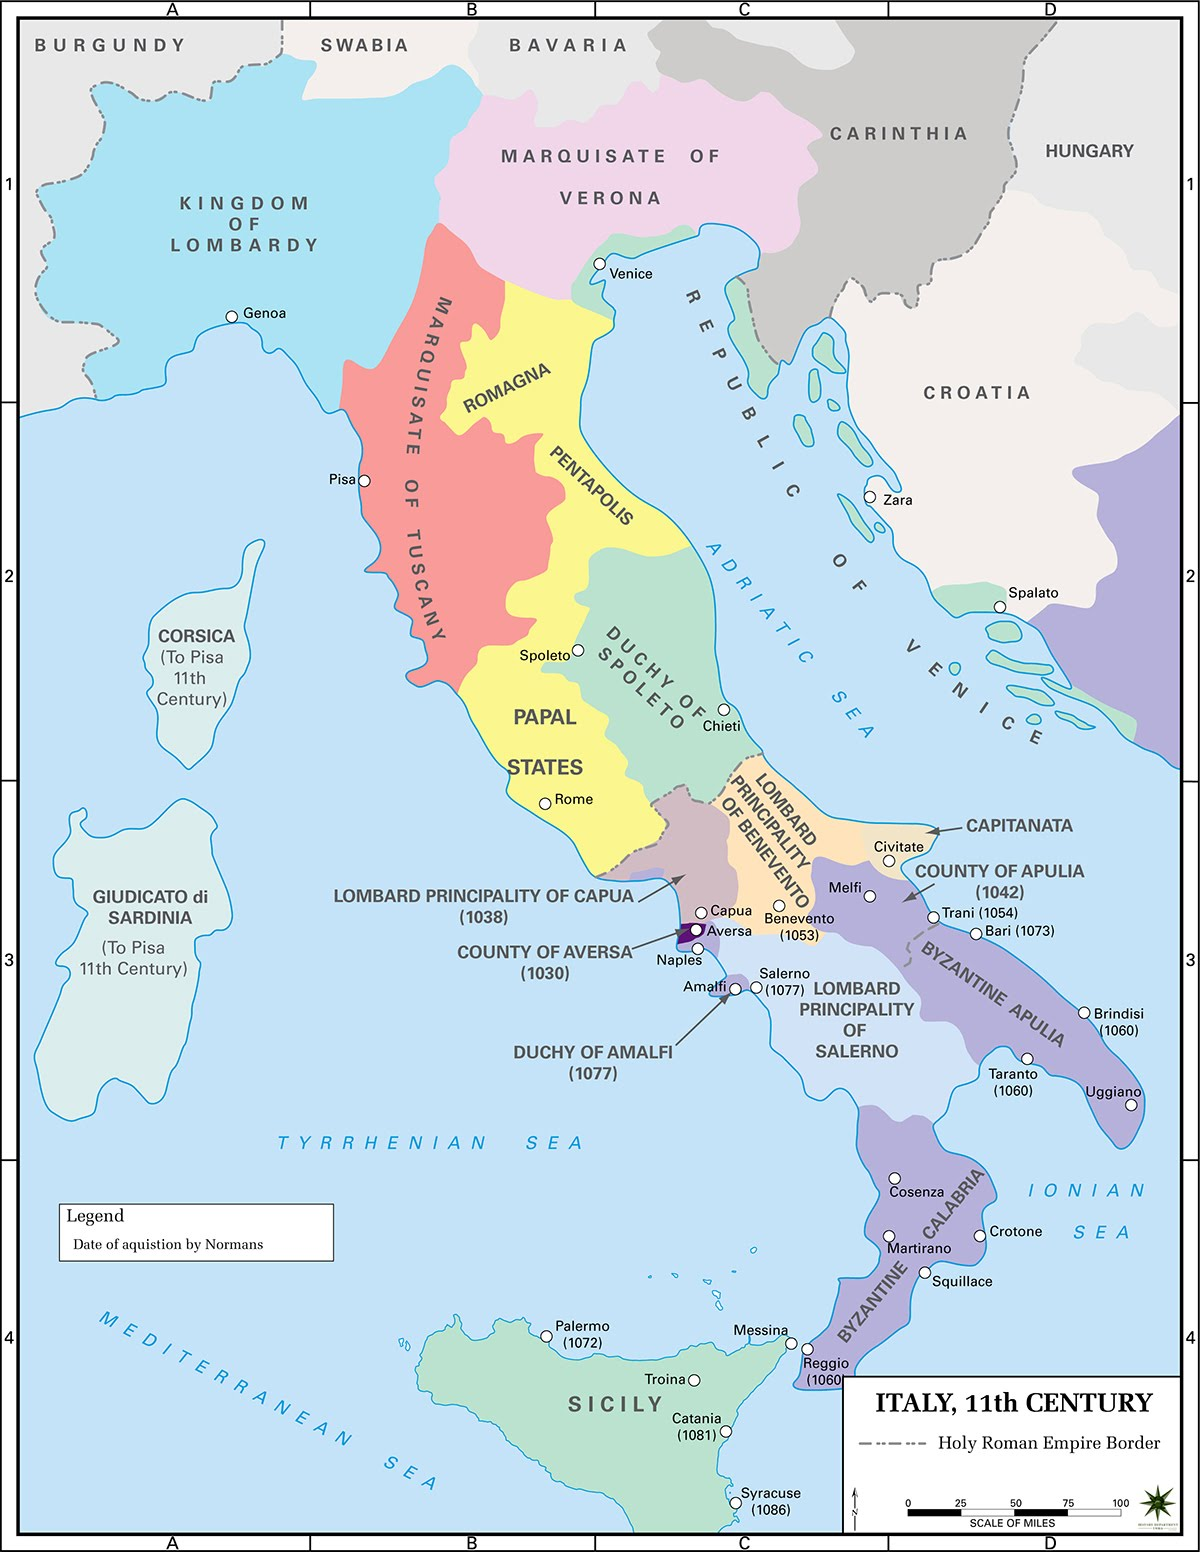 Medieval Map Of Italy.Medieval Trade Routes Campaign Maps Anno Domini 1064